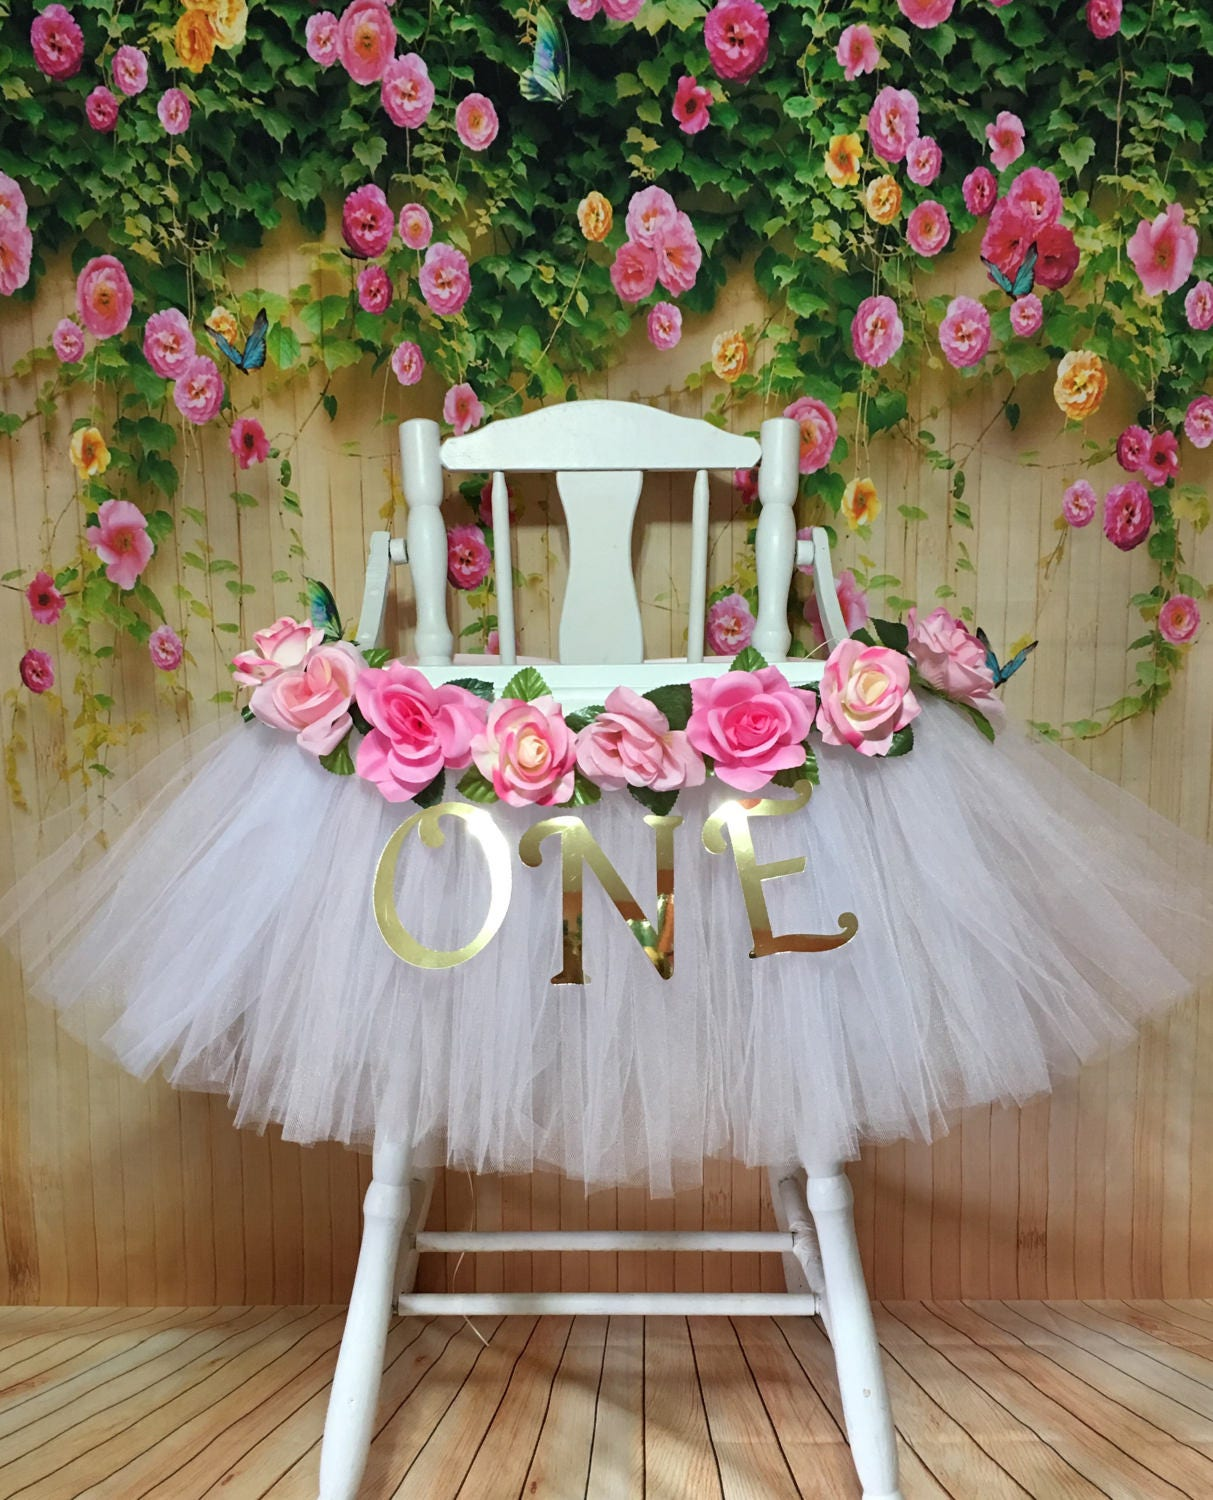 I Am One Pink And Gold Birthday Party Decorations One High: High Chair Tutu Highchair Tutu Skirt Pink And White